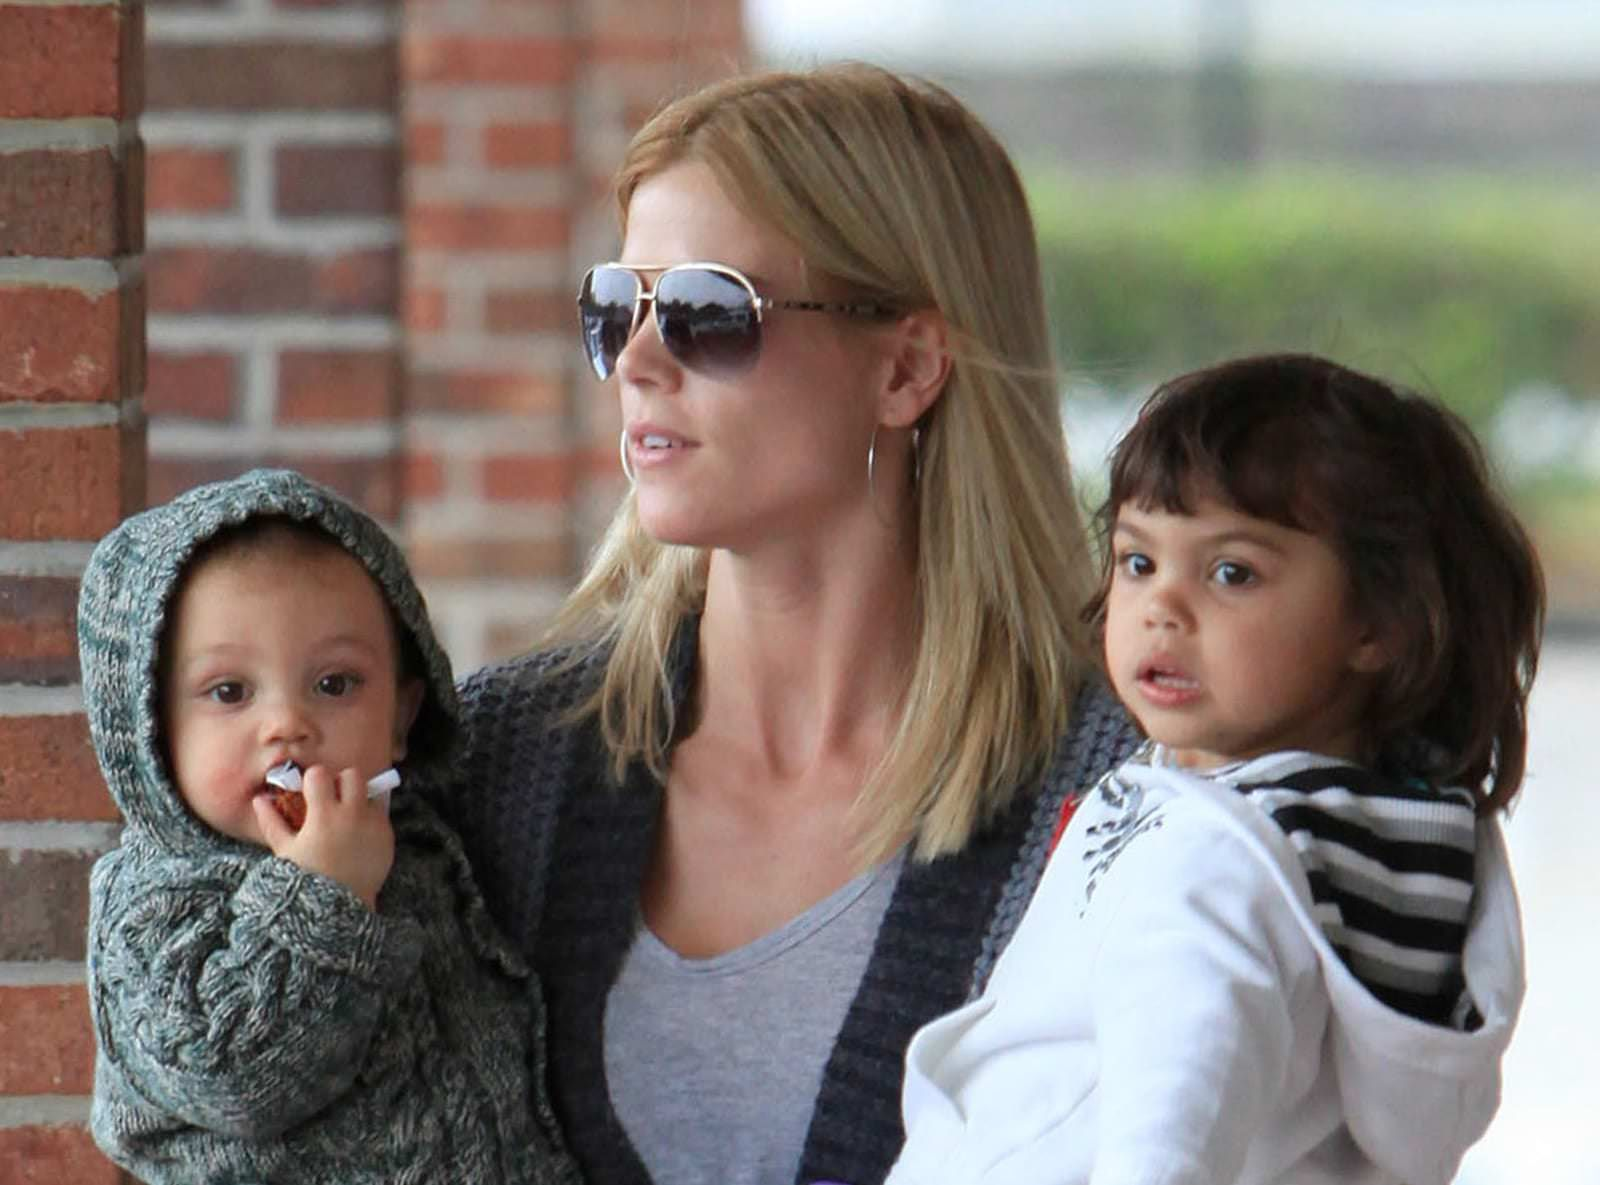 Her side: the story of Tiger Woods' ex-wife, Elin Nordegren | Worldation | Tiger  woods, Tiger woods wife, Tiger woods ex wife